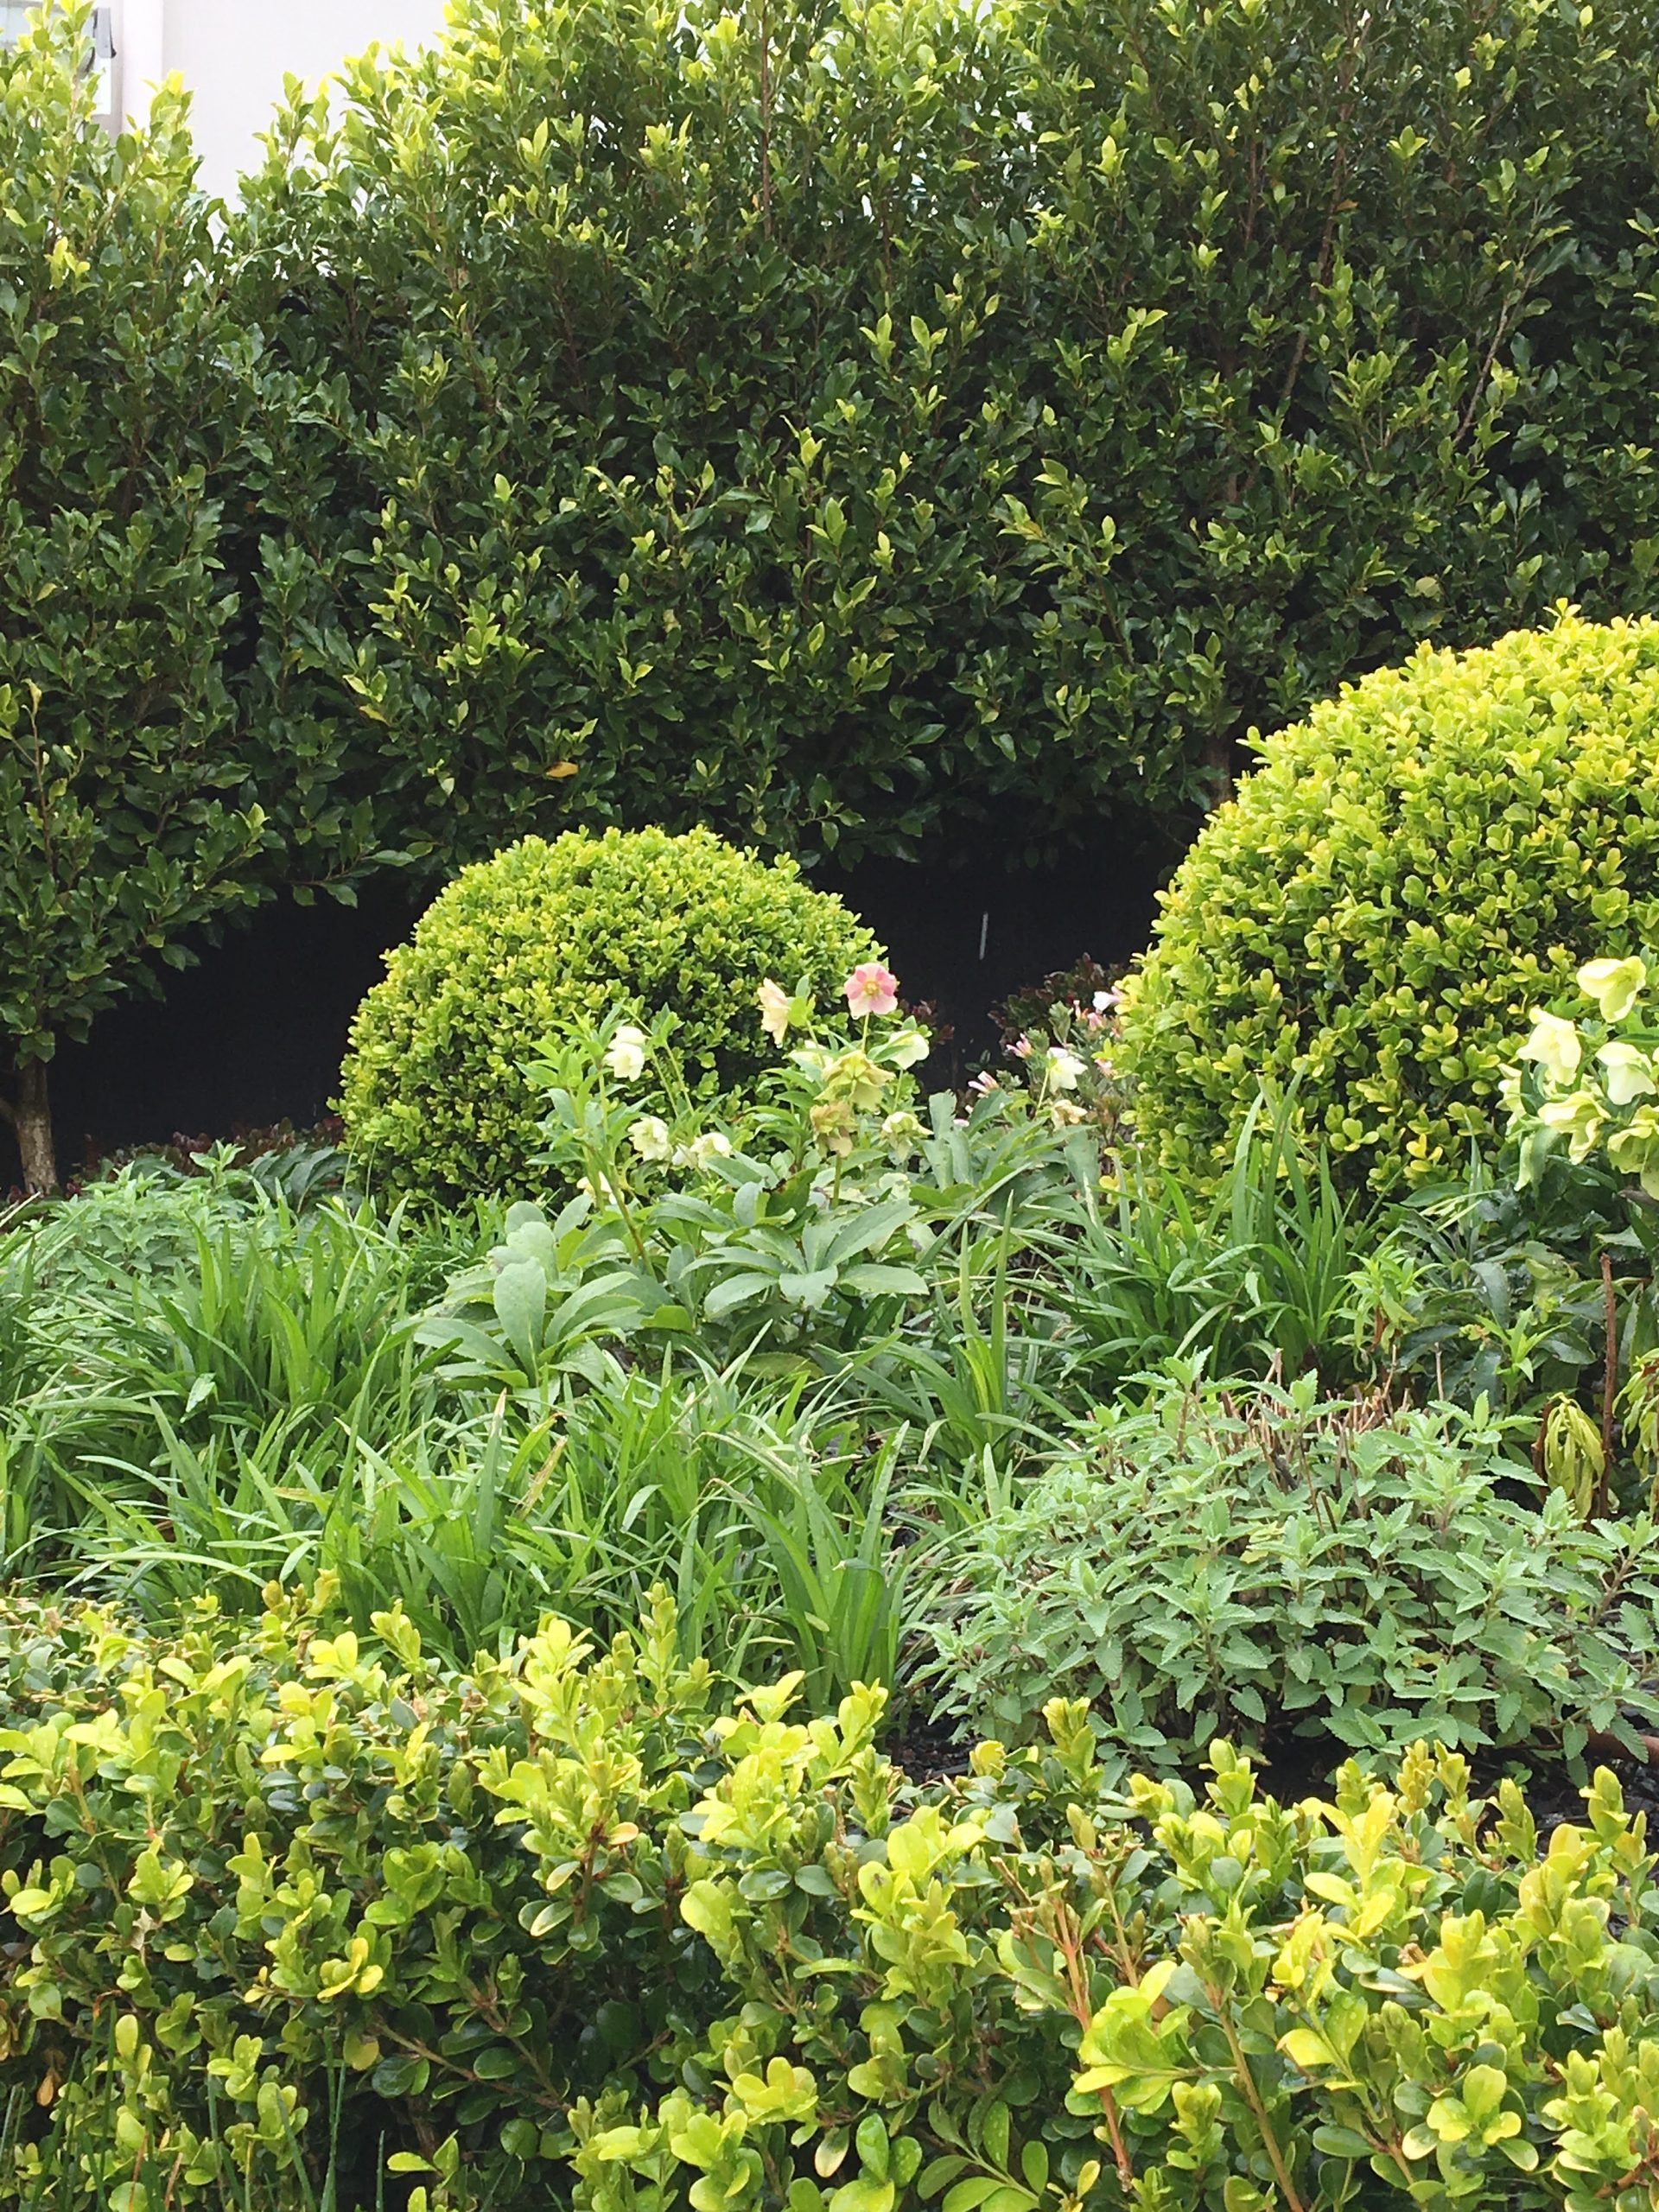 Landscaping IMG 4602